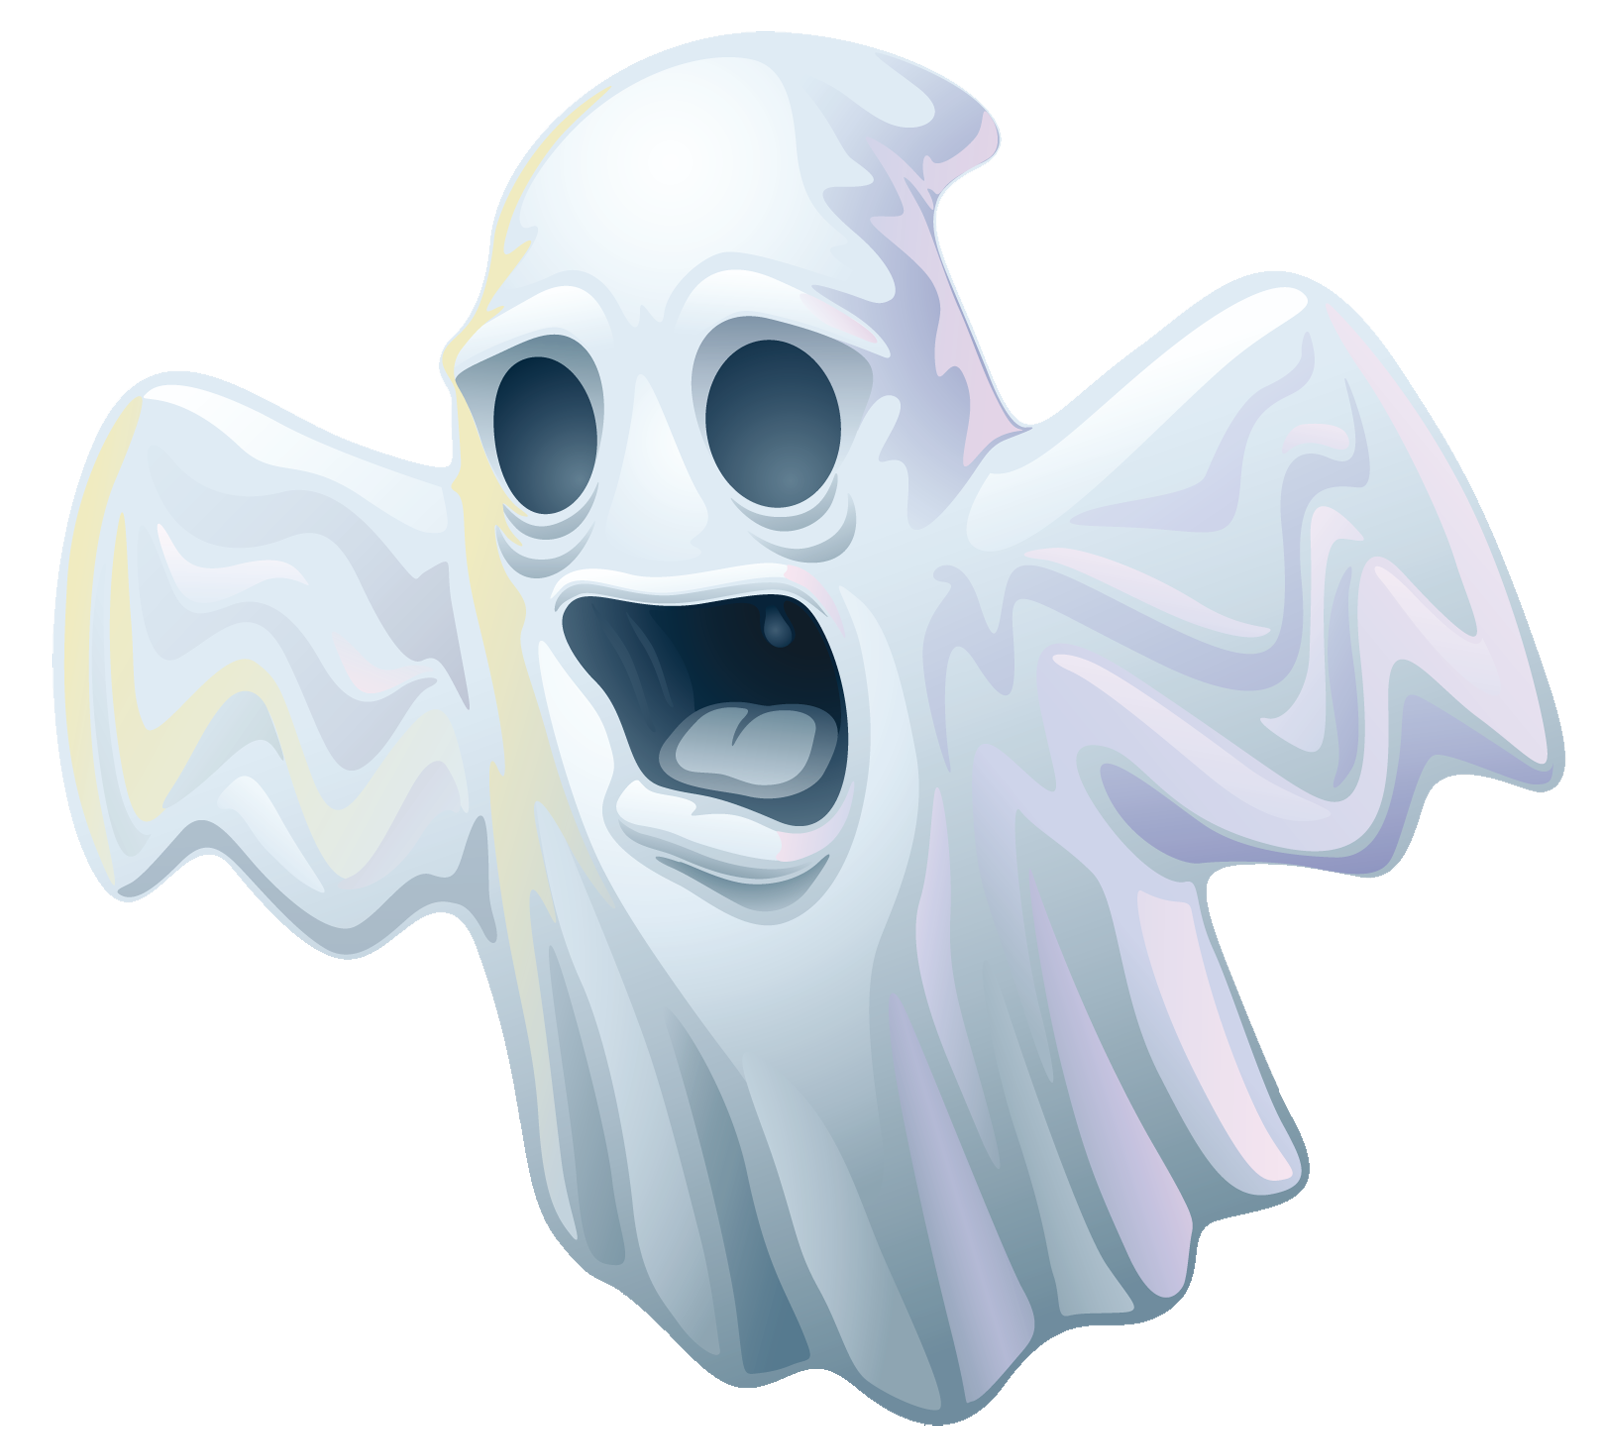 Ghostly clipart creepy High Creepy  Gallery size